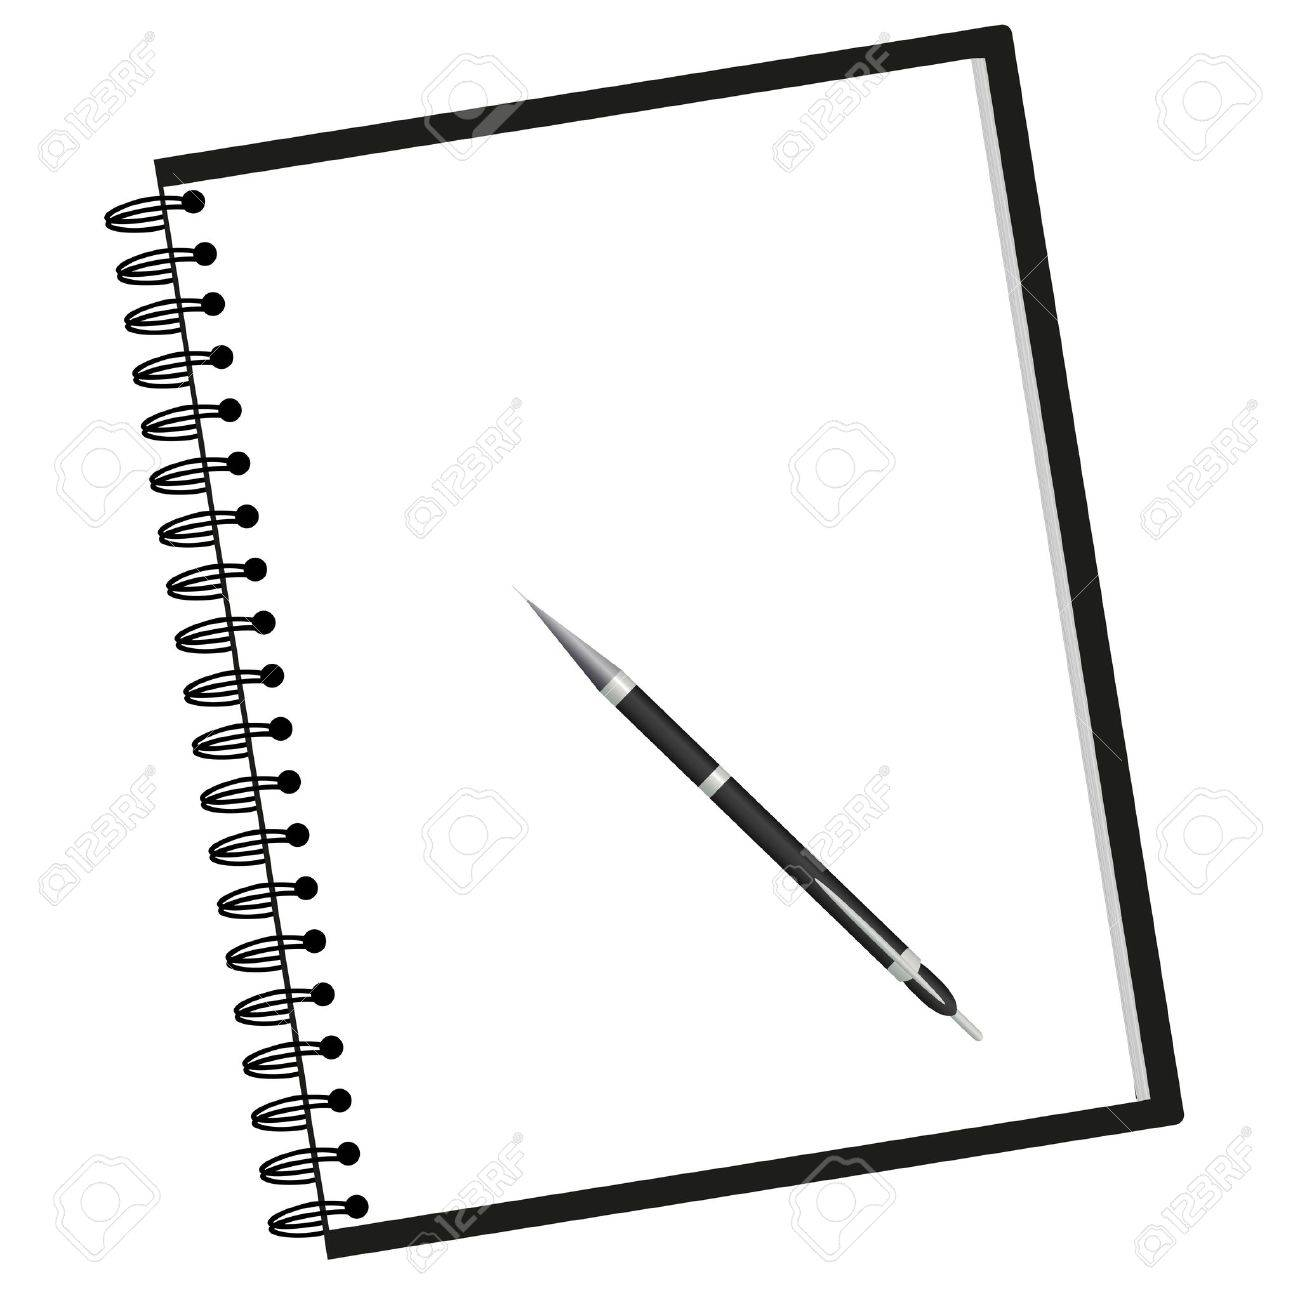 Black and white notebook inside cover clipart image freeuse library Notebook Clipart Black And White | Free download best Notebook ... image freeuse library